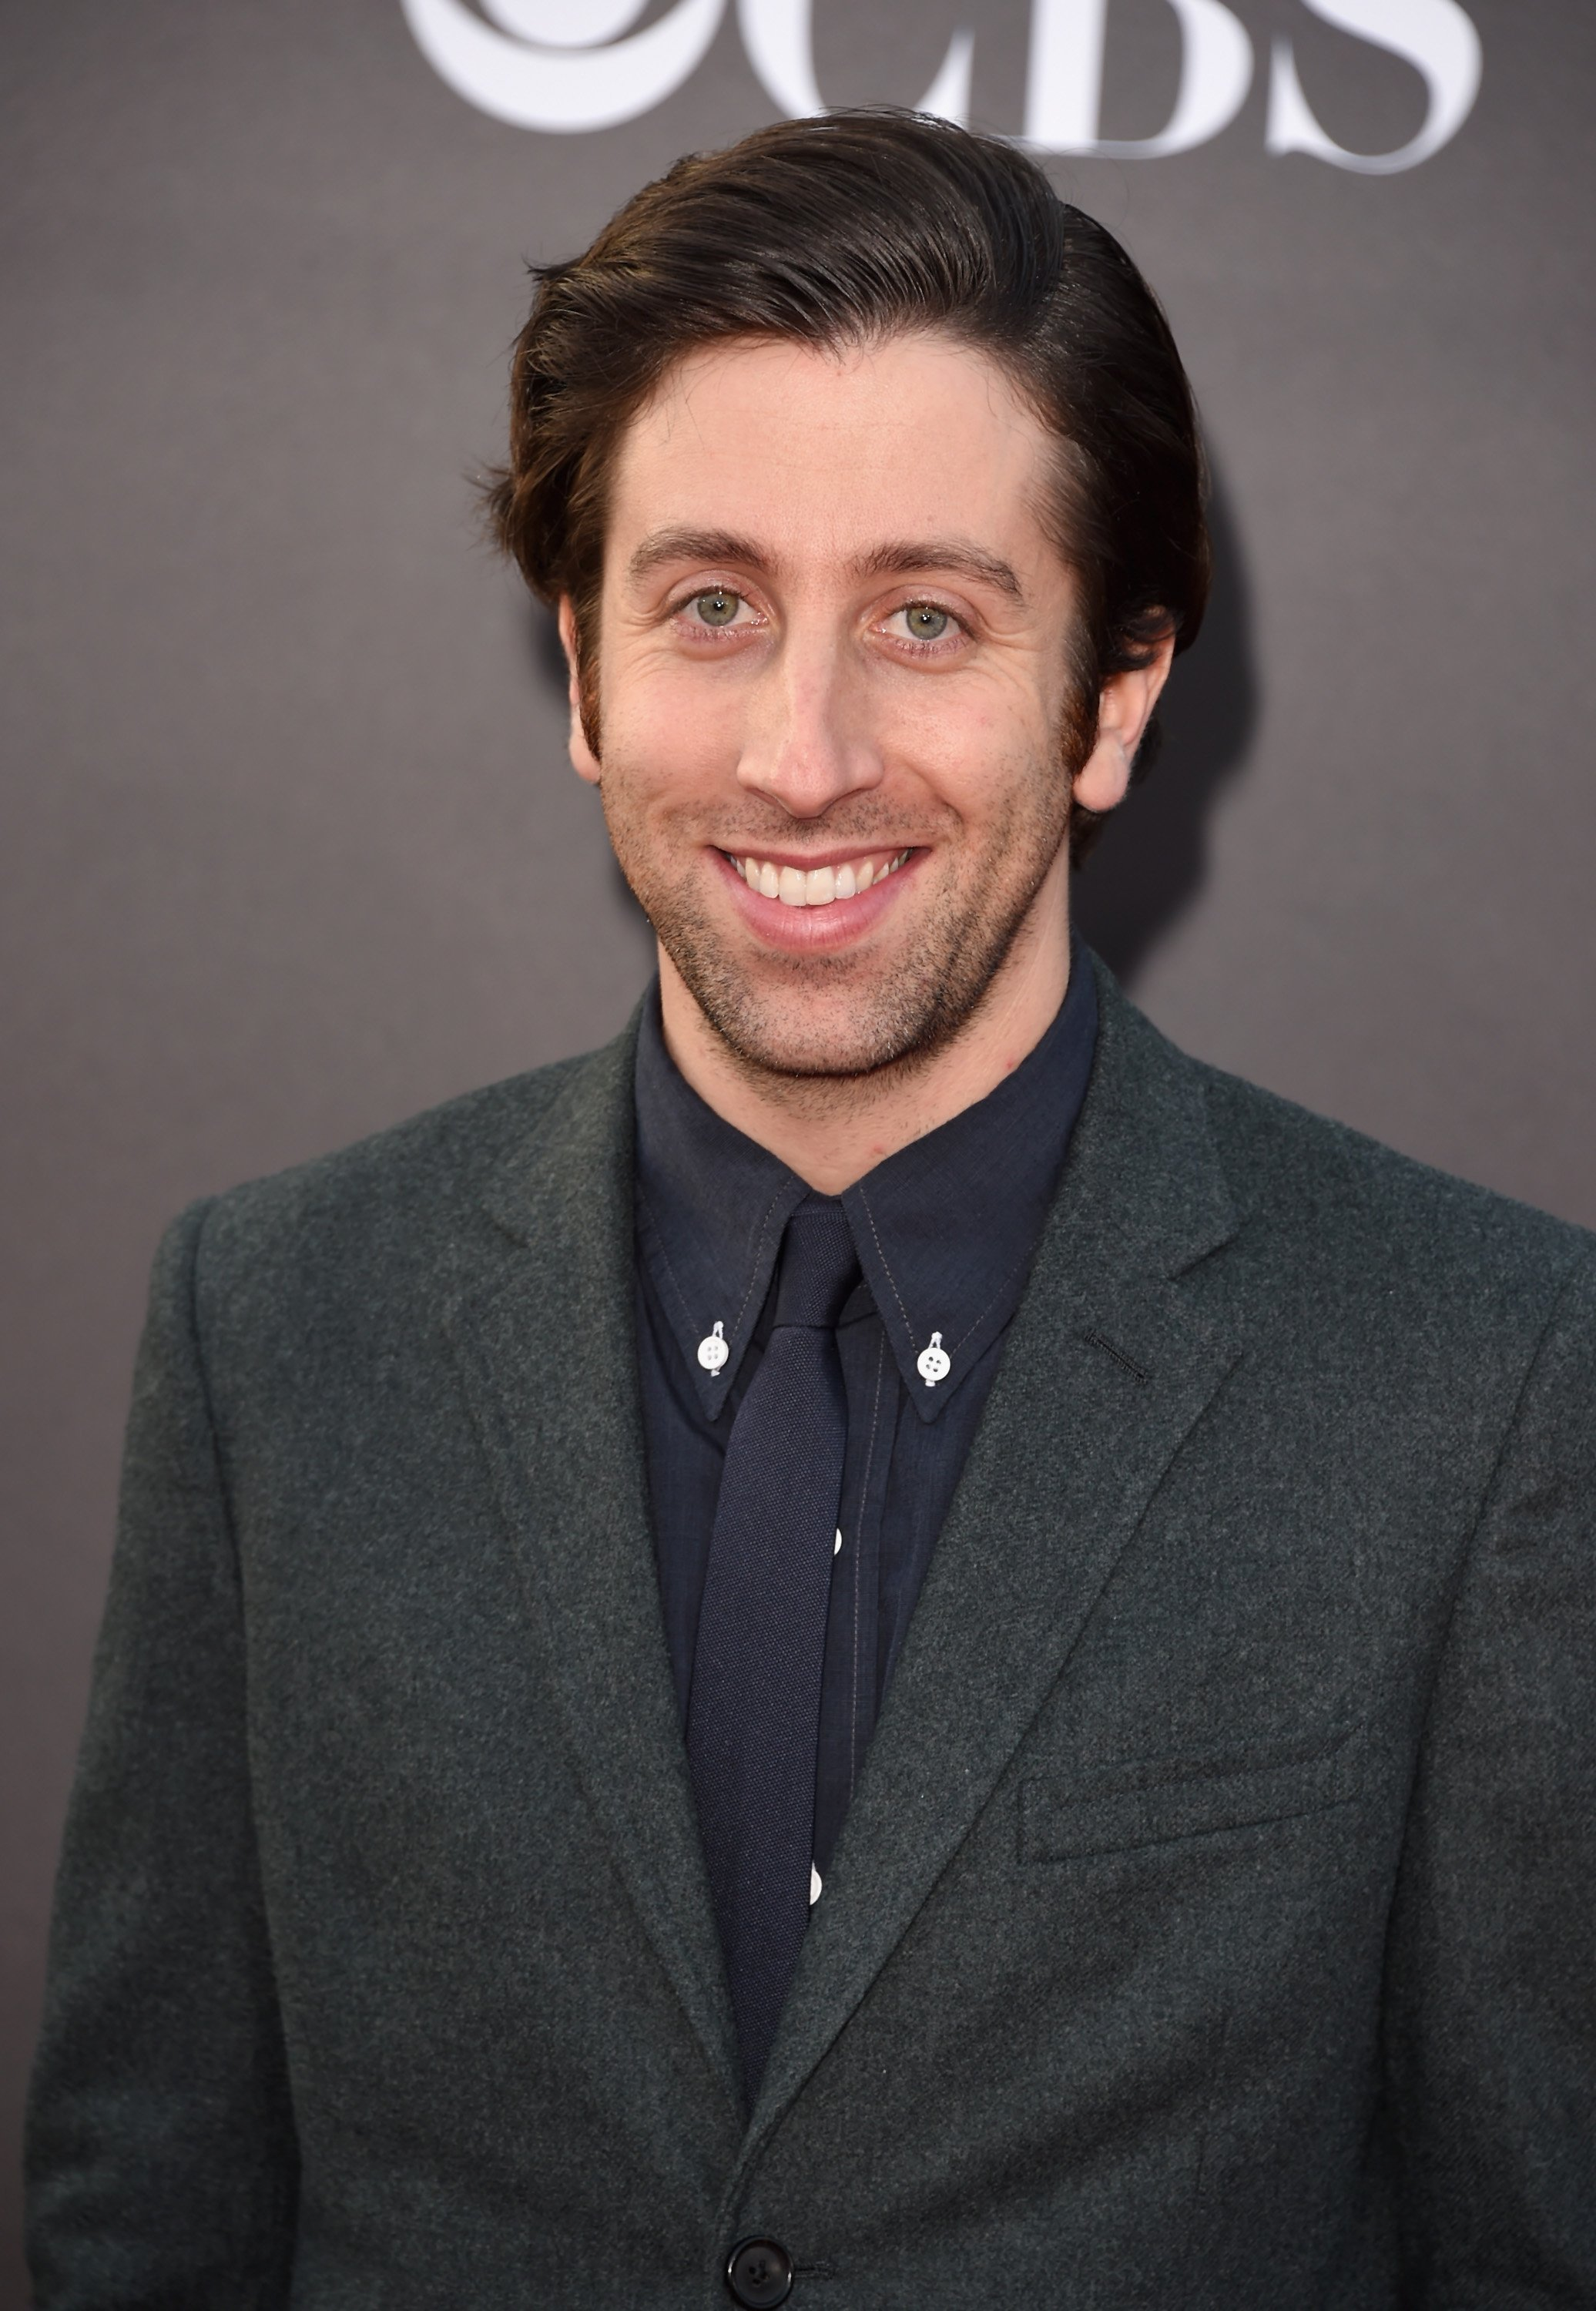 Simon Helberg attends the Hollywood Film Awards on November 14, 2014 in California. | Photo: Getty Images